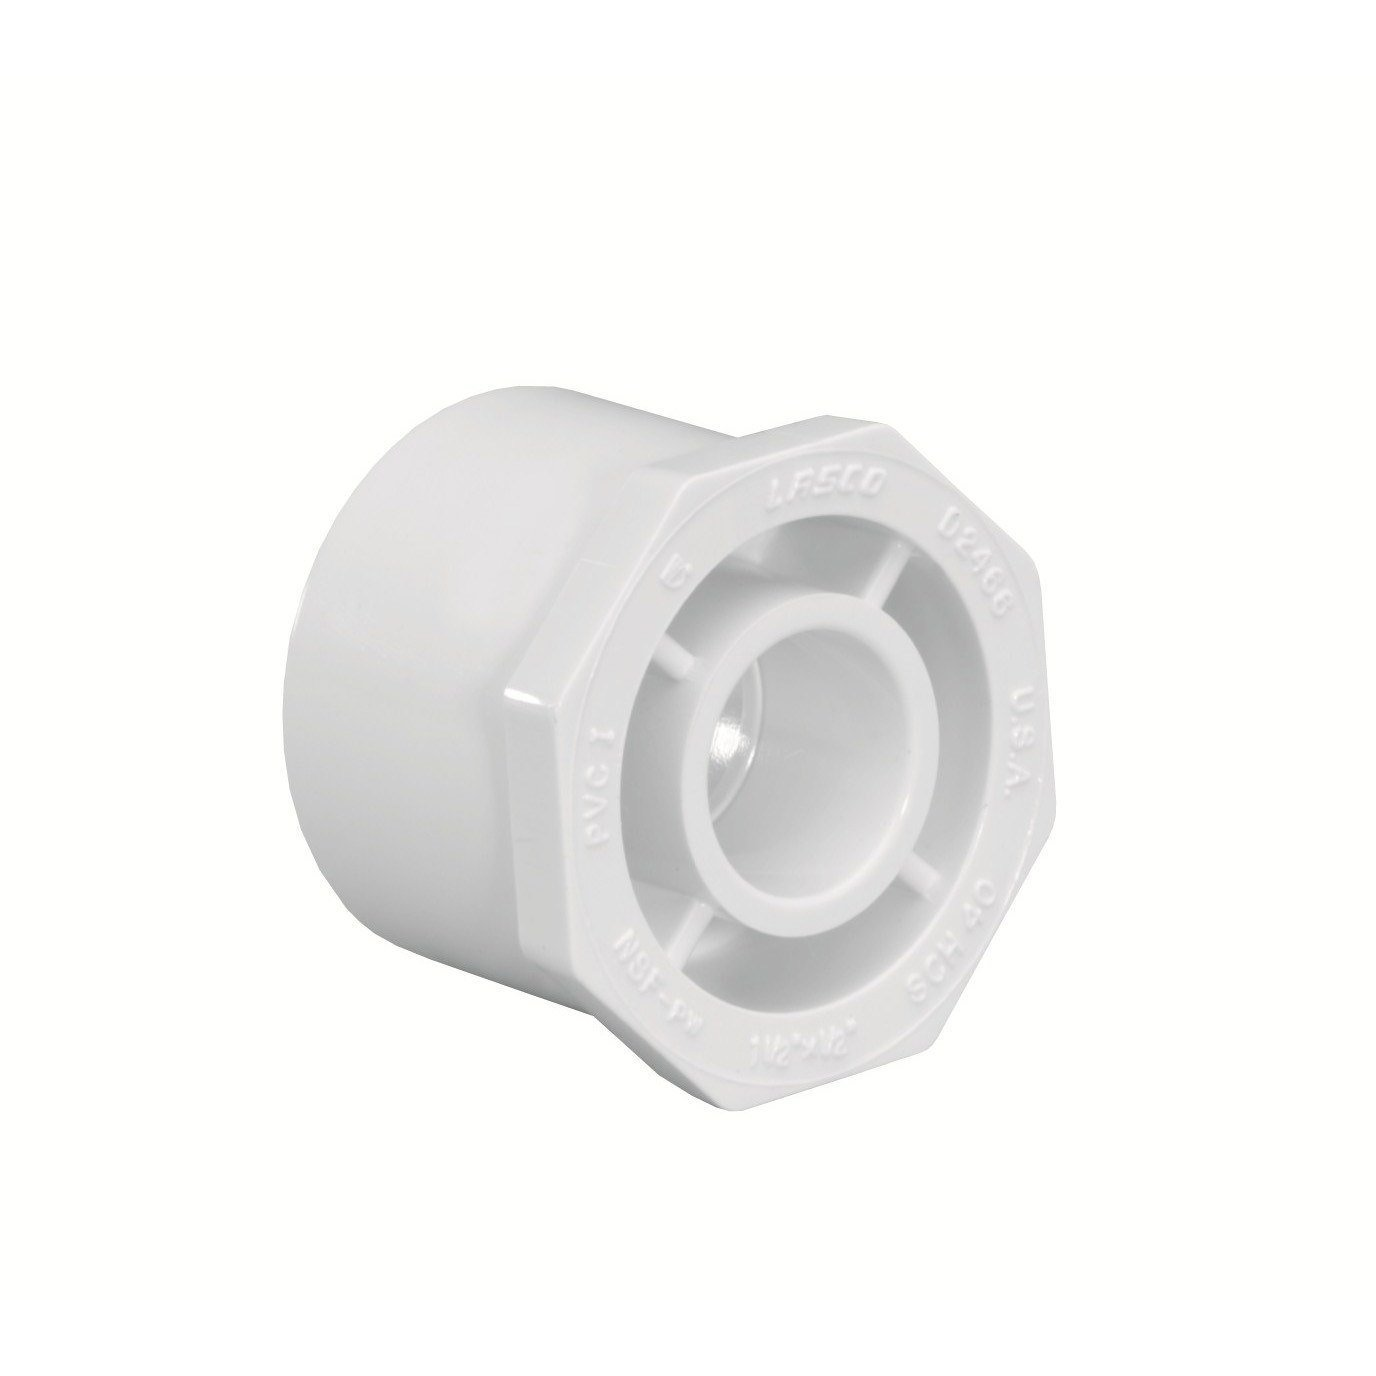 Schedule 40 SP x Slip Reducer Bushing by LASCO (Image #1)